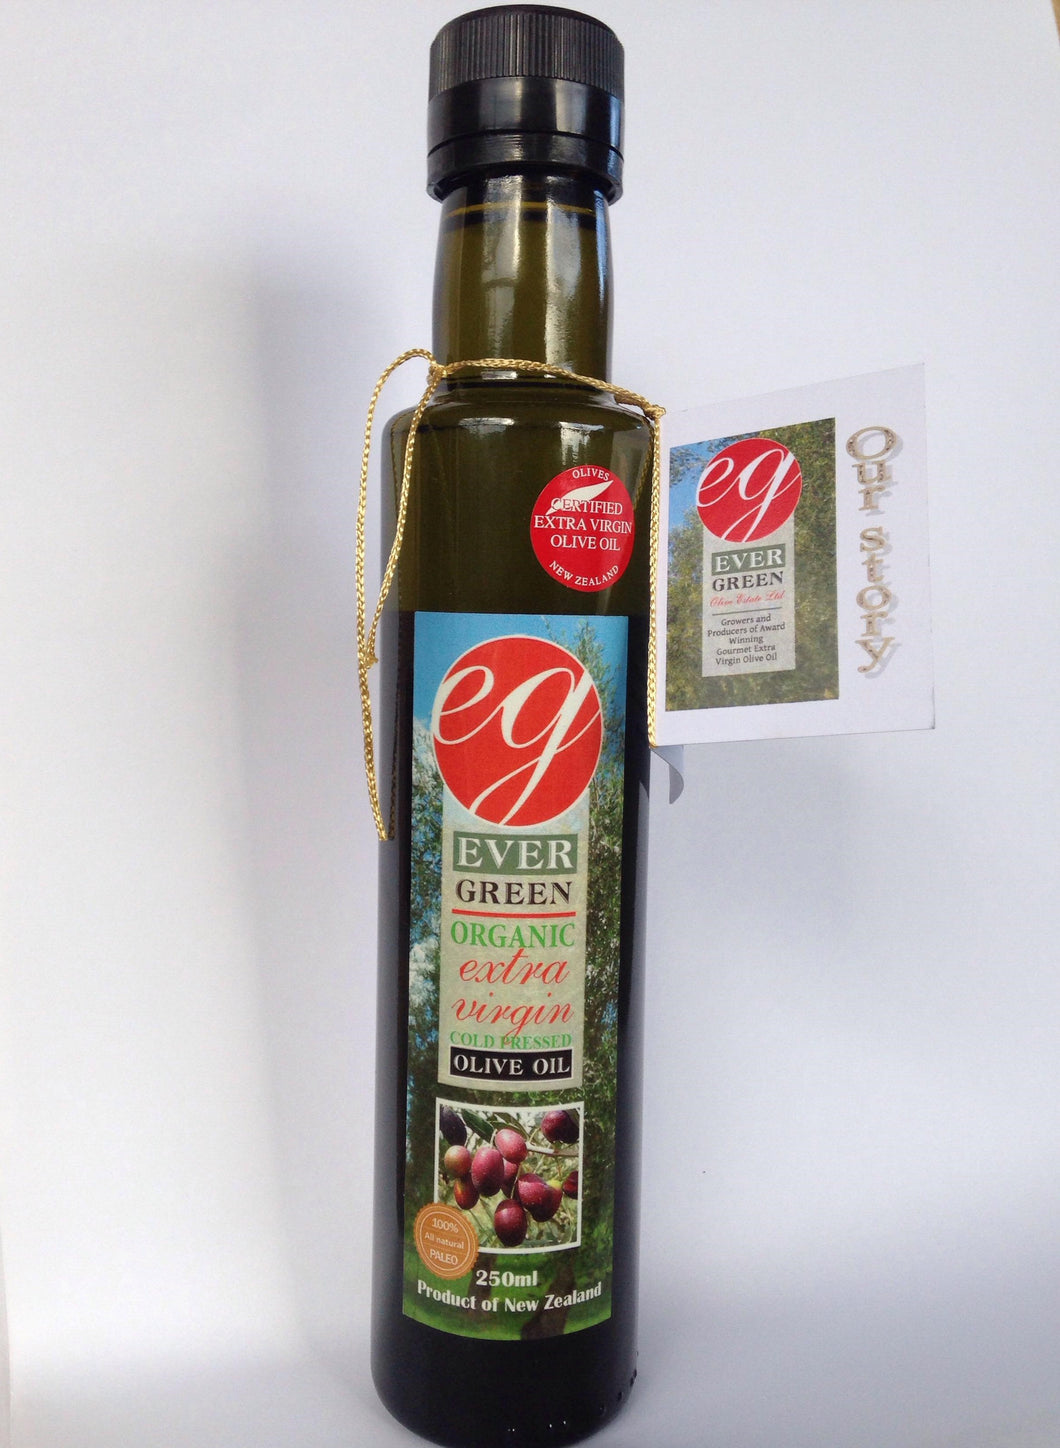 Evergreen, 250ml Premium Organic Extra Virgin Olive Oil, Kaikohe, NZ - twisted-tree-nz-olive-oil